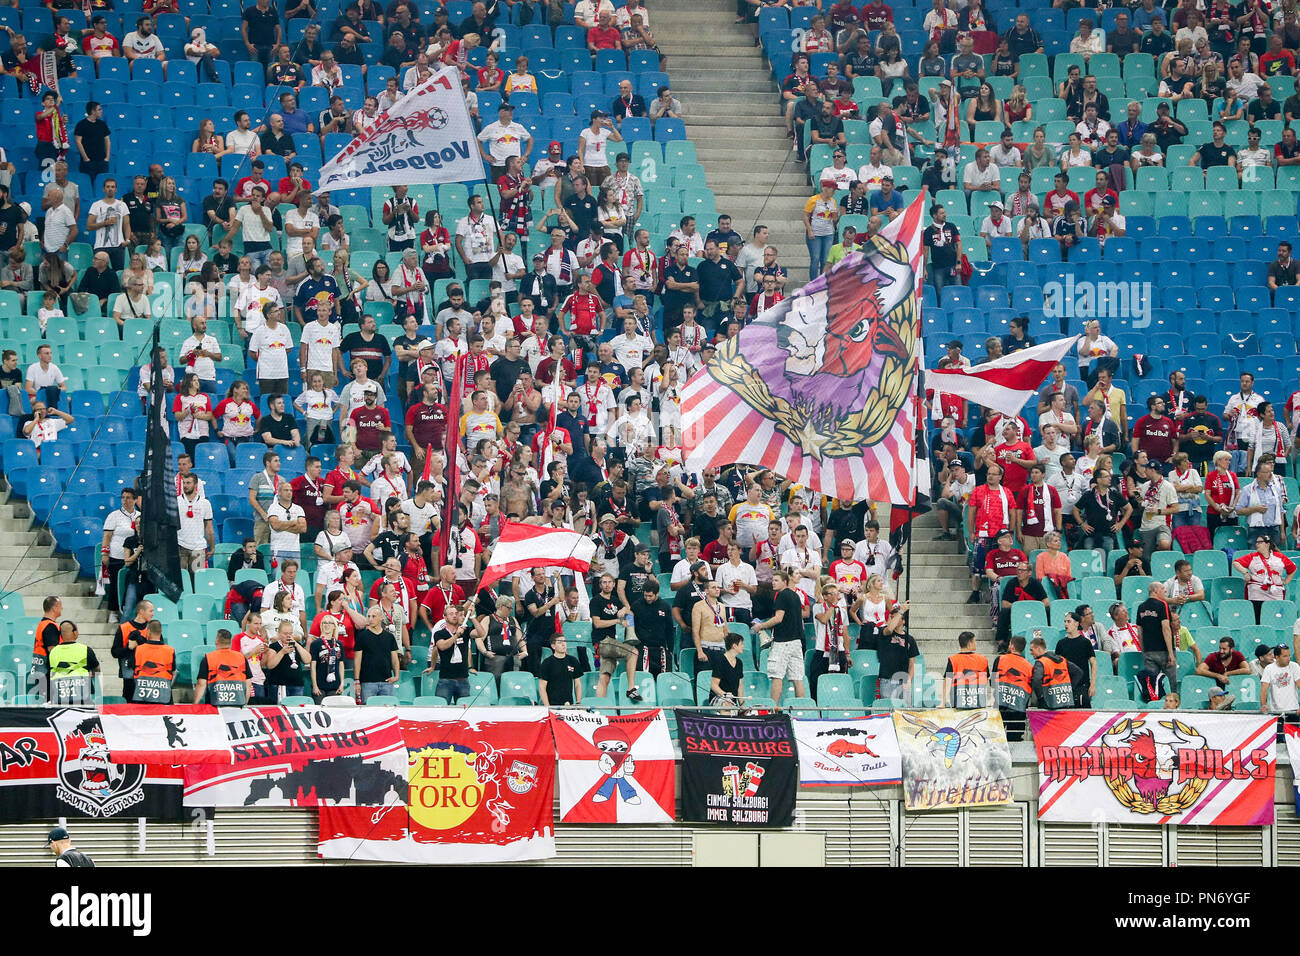 Leipzig Saxony 20th Sep 2018 Soccer Europa League Group Stage Matchday 1 Rb Leipzig Rb Salzburg Fans From Salzburg Who Have Travelled With Them Cheer Their Club On Credit Jan Woitas Dpa Zentralbild Dpa Alamy